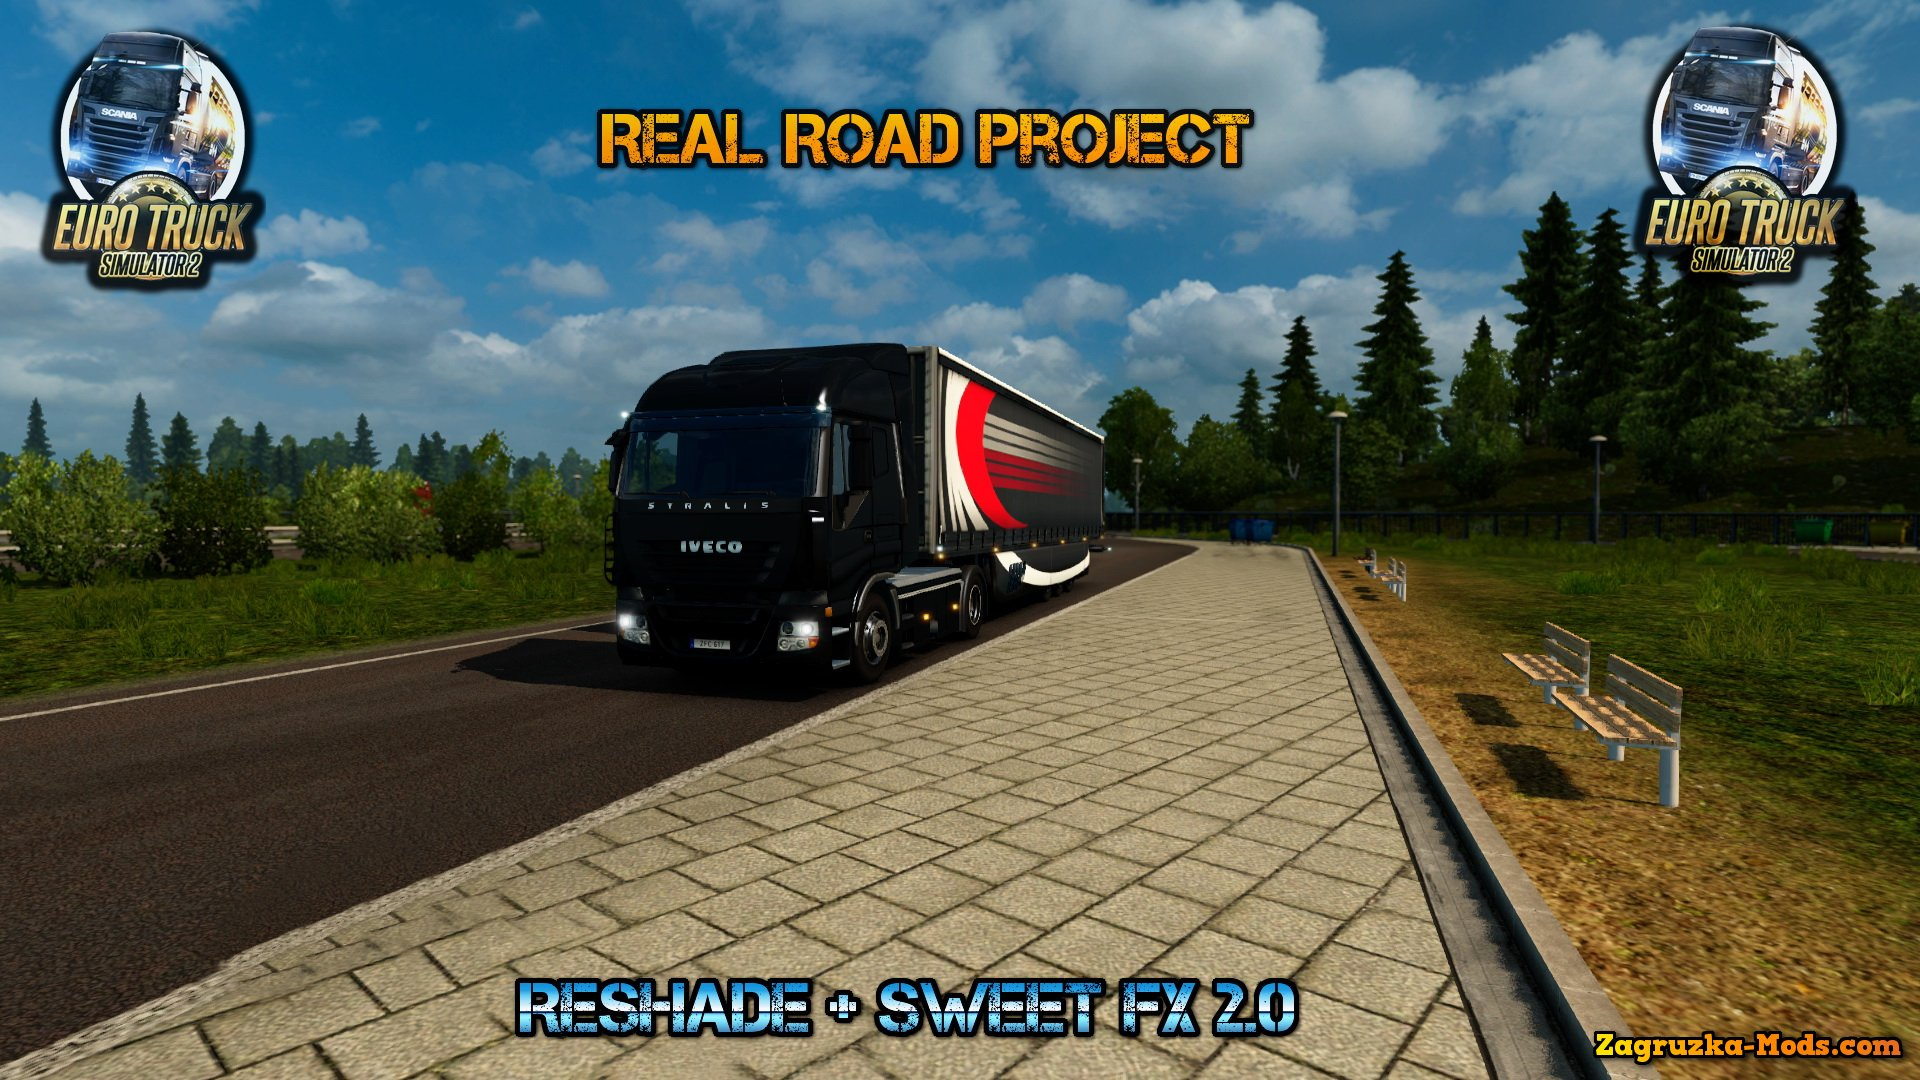 Real Road Project (Reshade + Sweet FX 2.0) for ETS 2